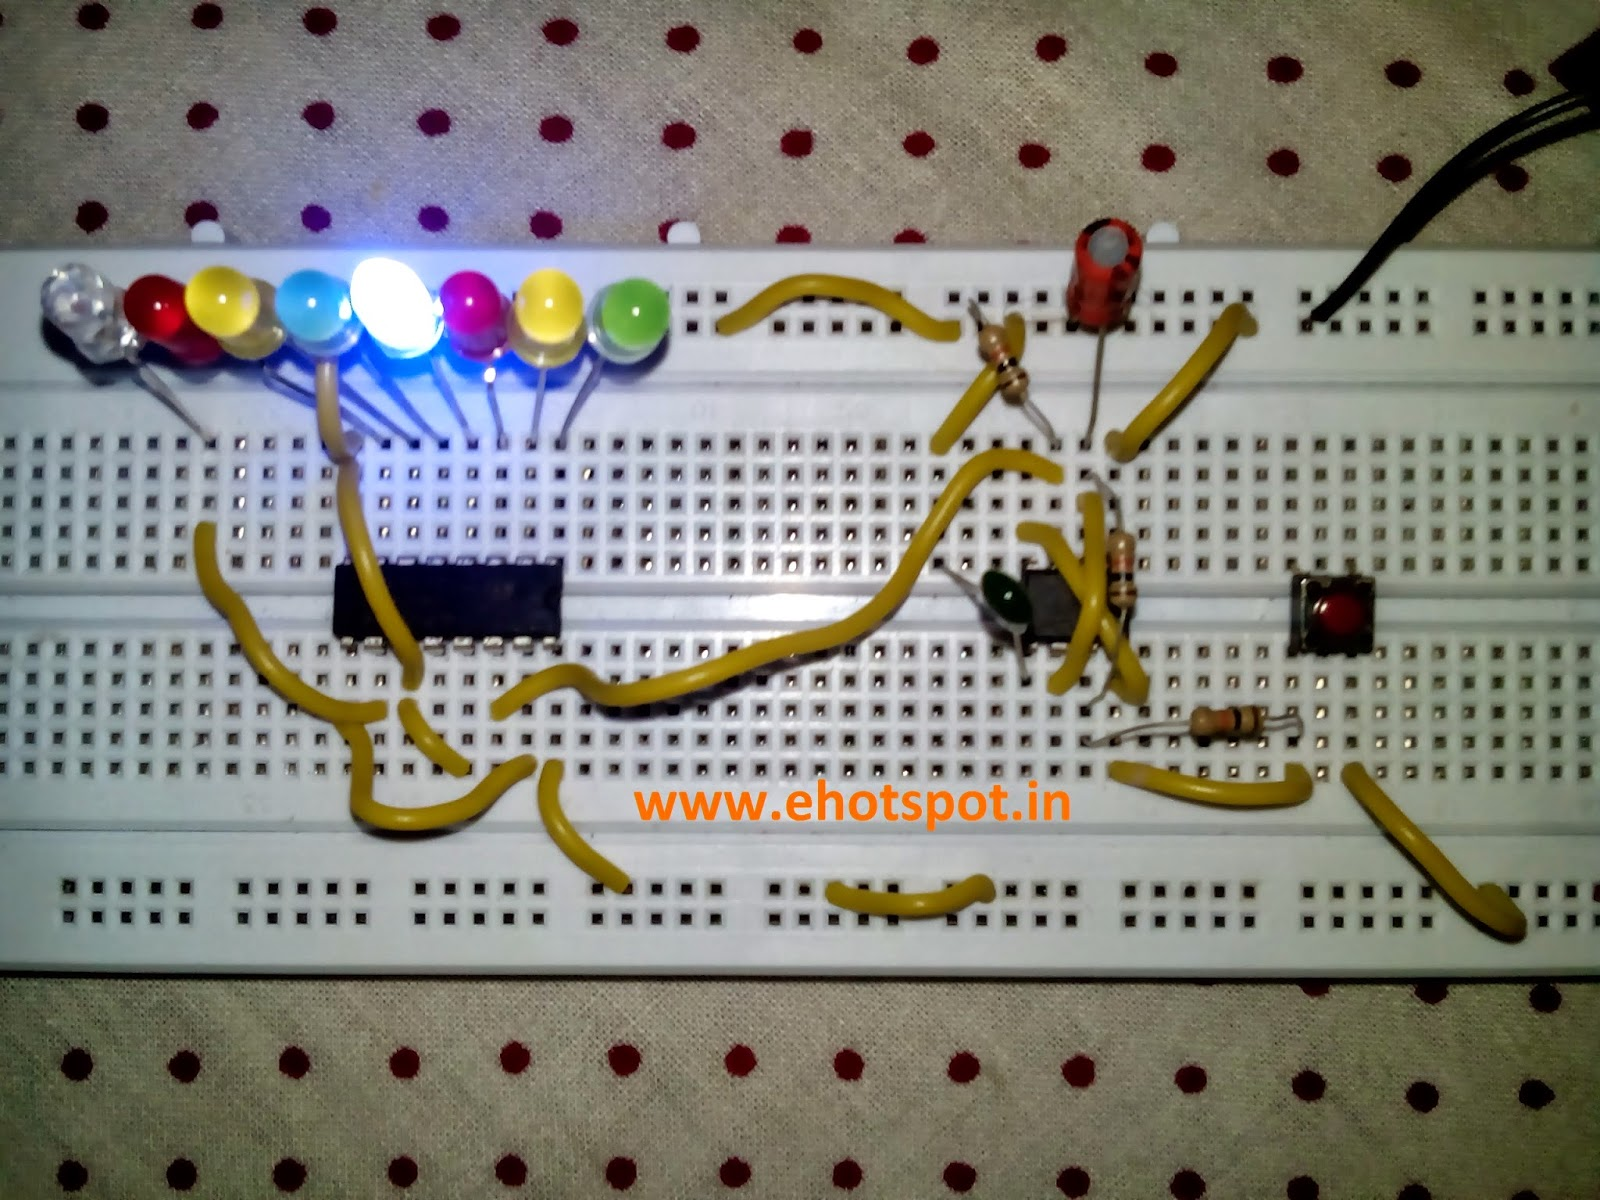 3v Led Chaser Using 4017 Electronics Hotspot Everything About Also The Value Of Capacitor On Pin 2 555 Can Be Changed To Higher 10uf Decrease Speed Sequential Flashing When Push Button Is